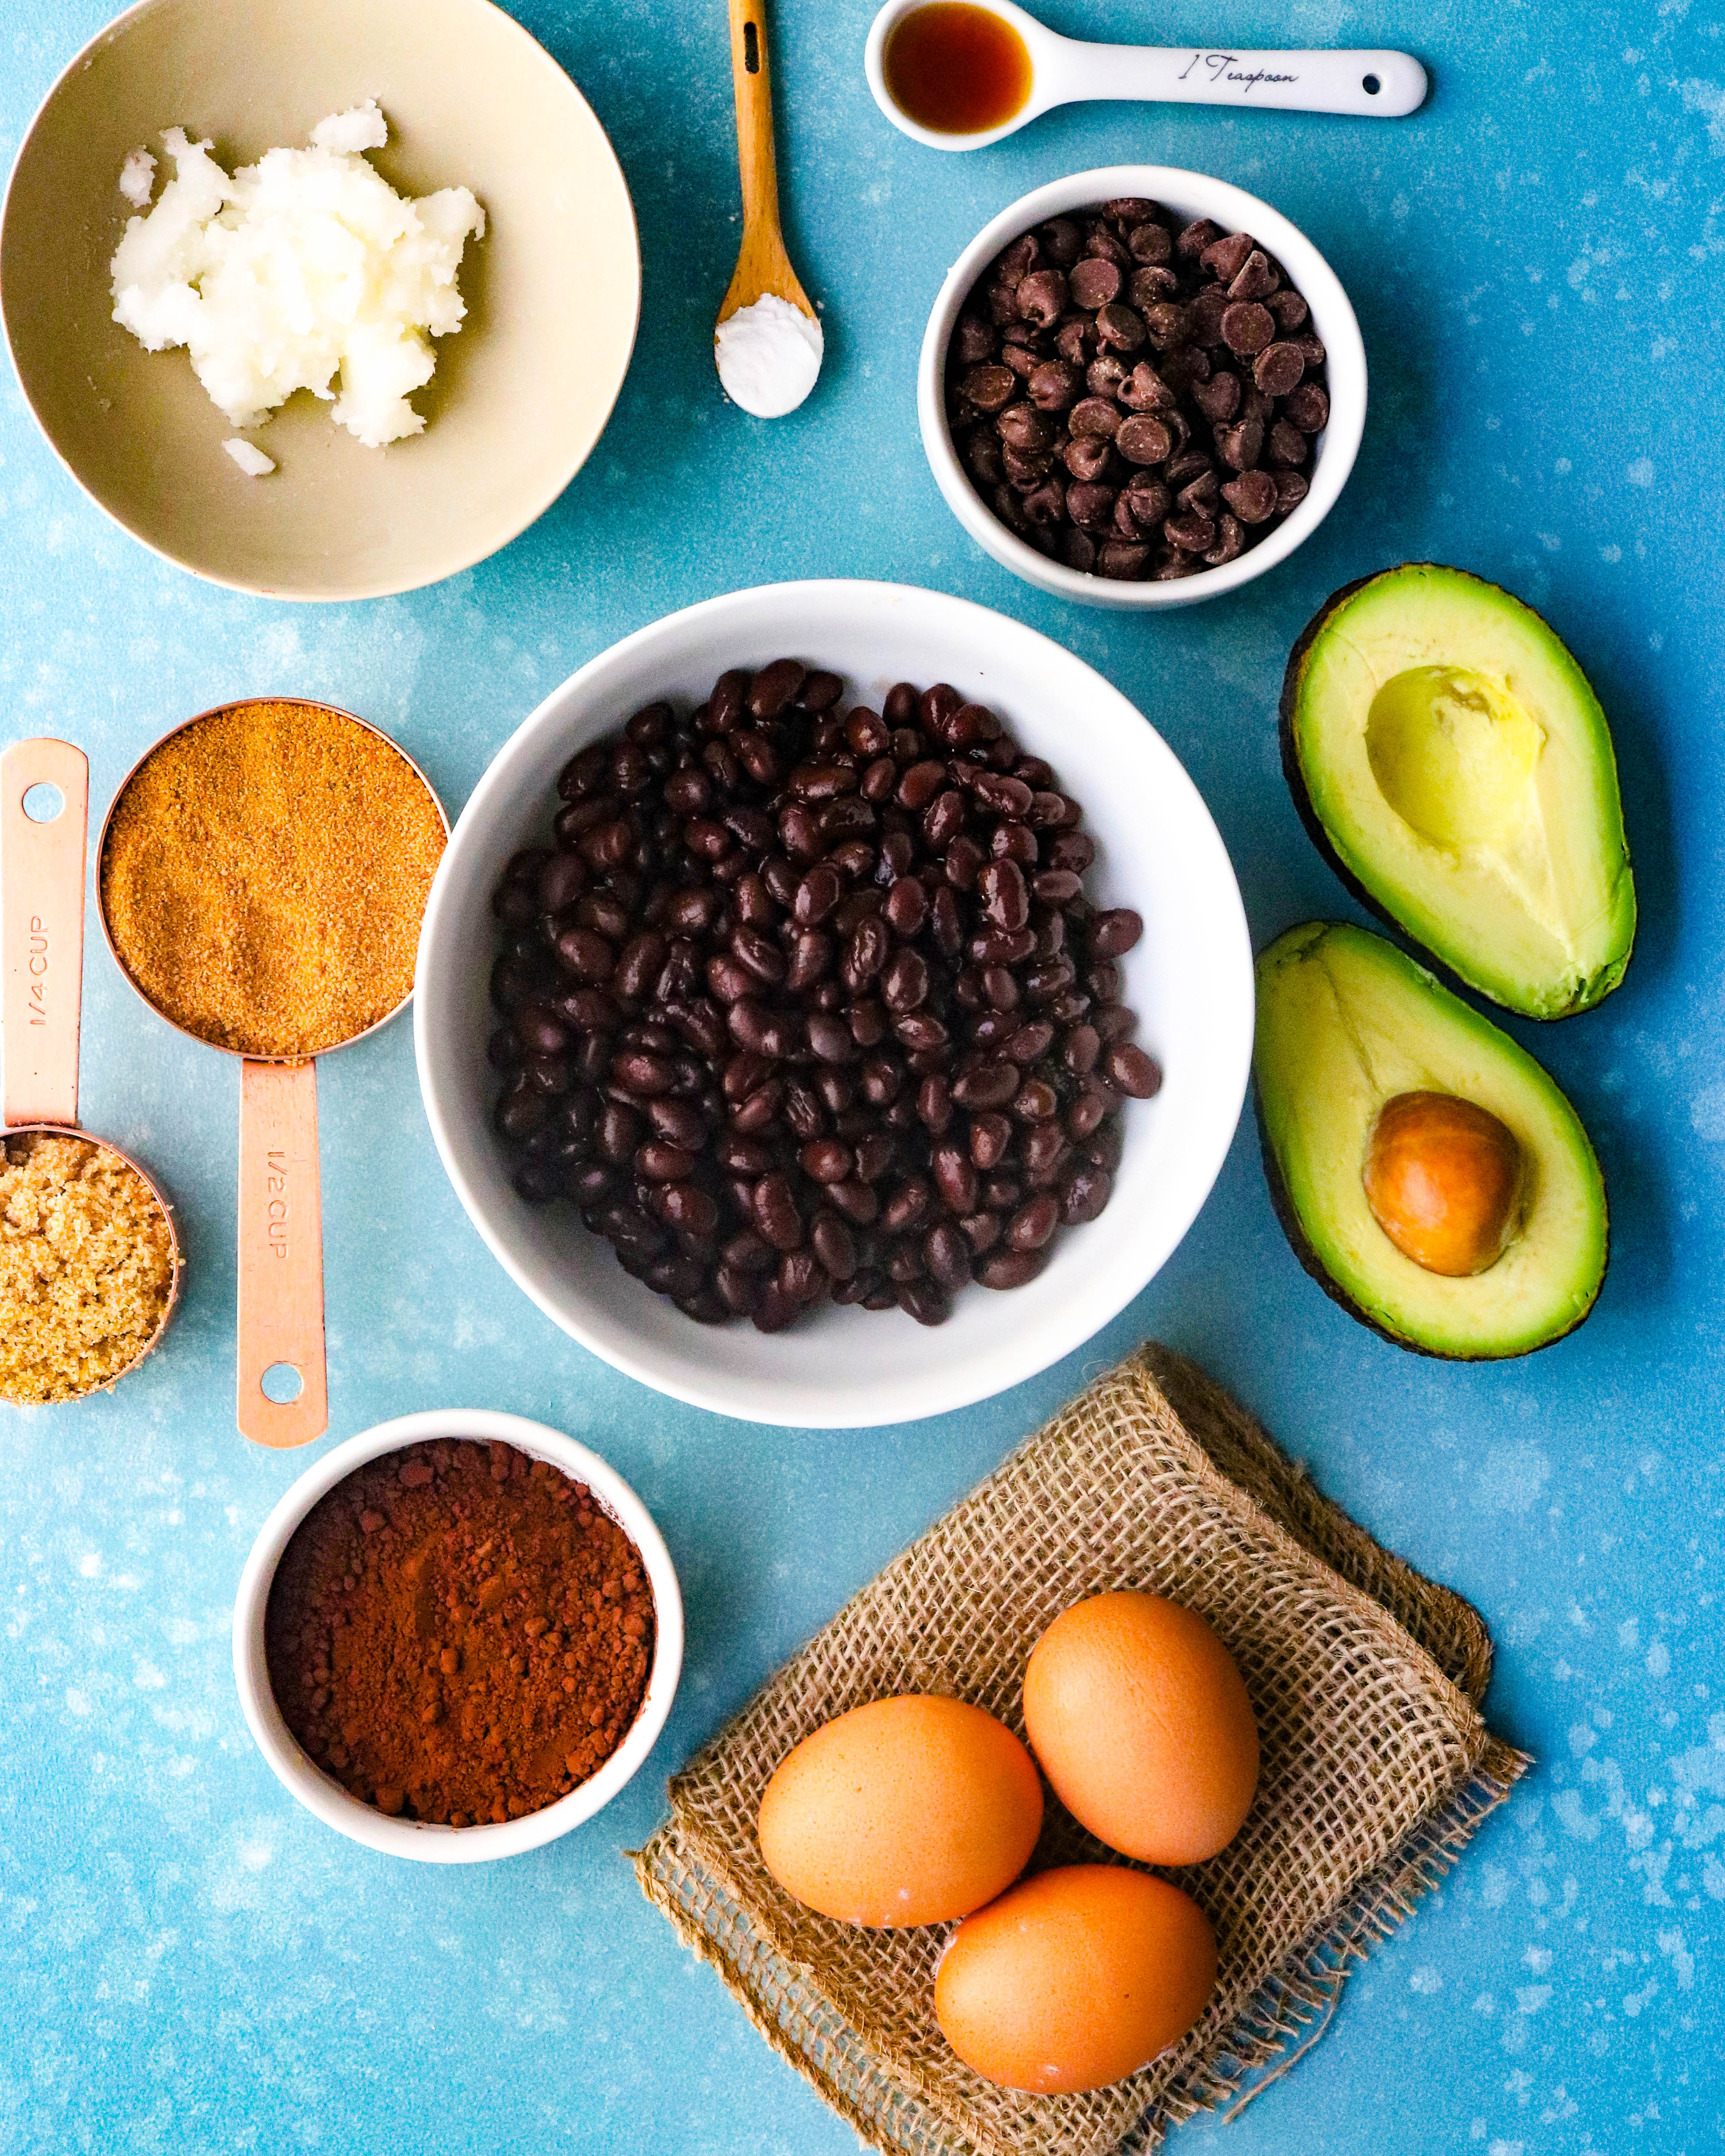 black beans, avocado, eggs, oil, and chocolate chips in bowls on a blue surface